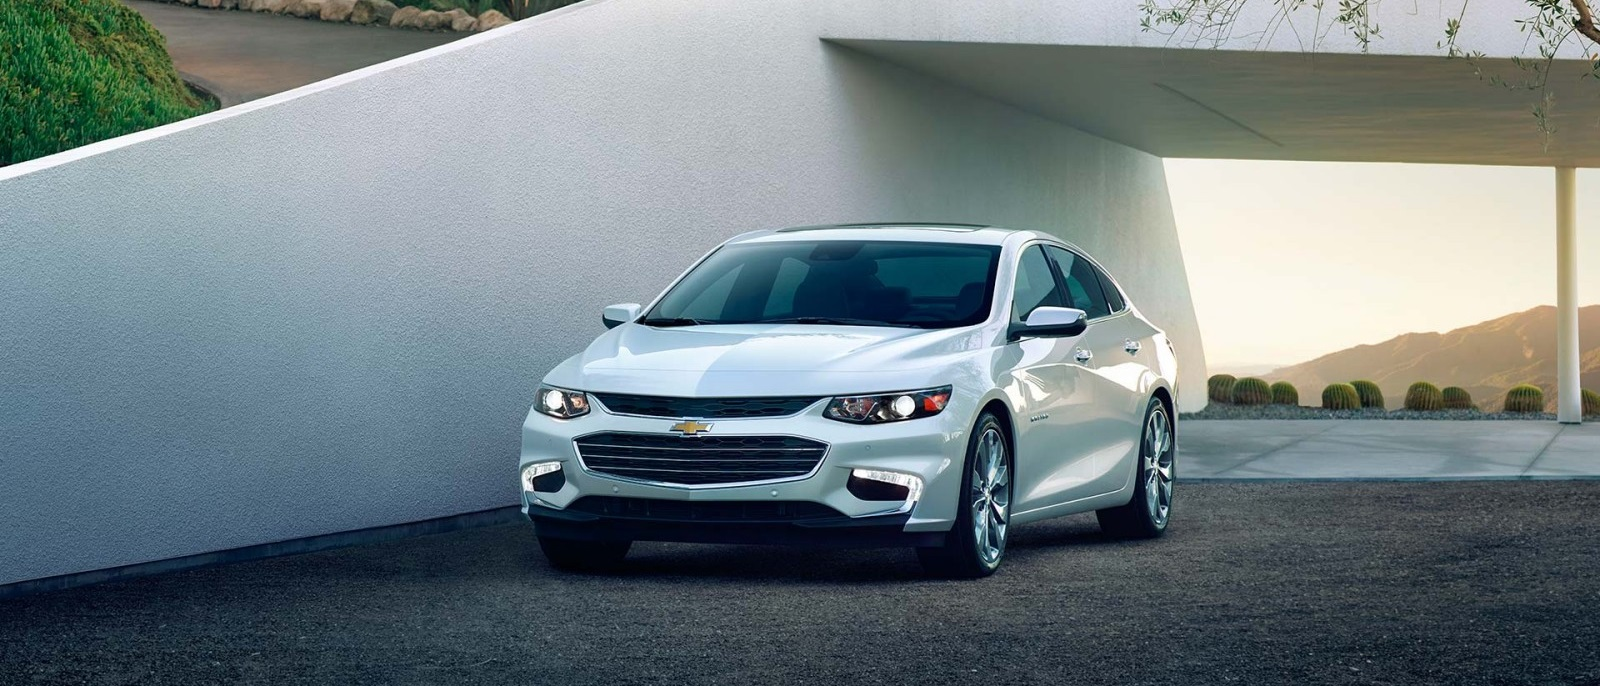 2016 Chevy Malibu Hybrid front exterior view